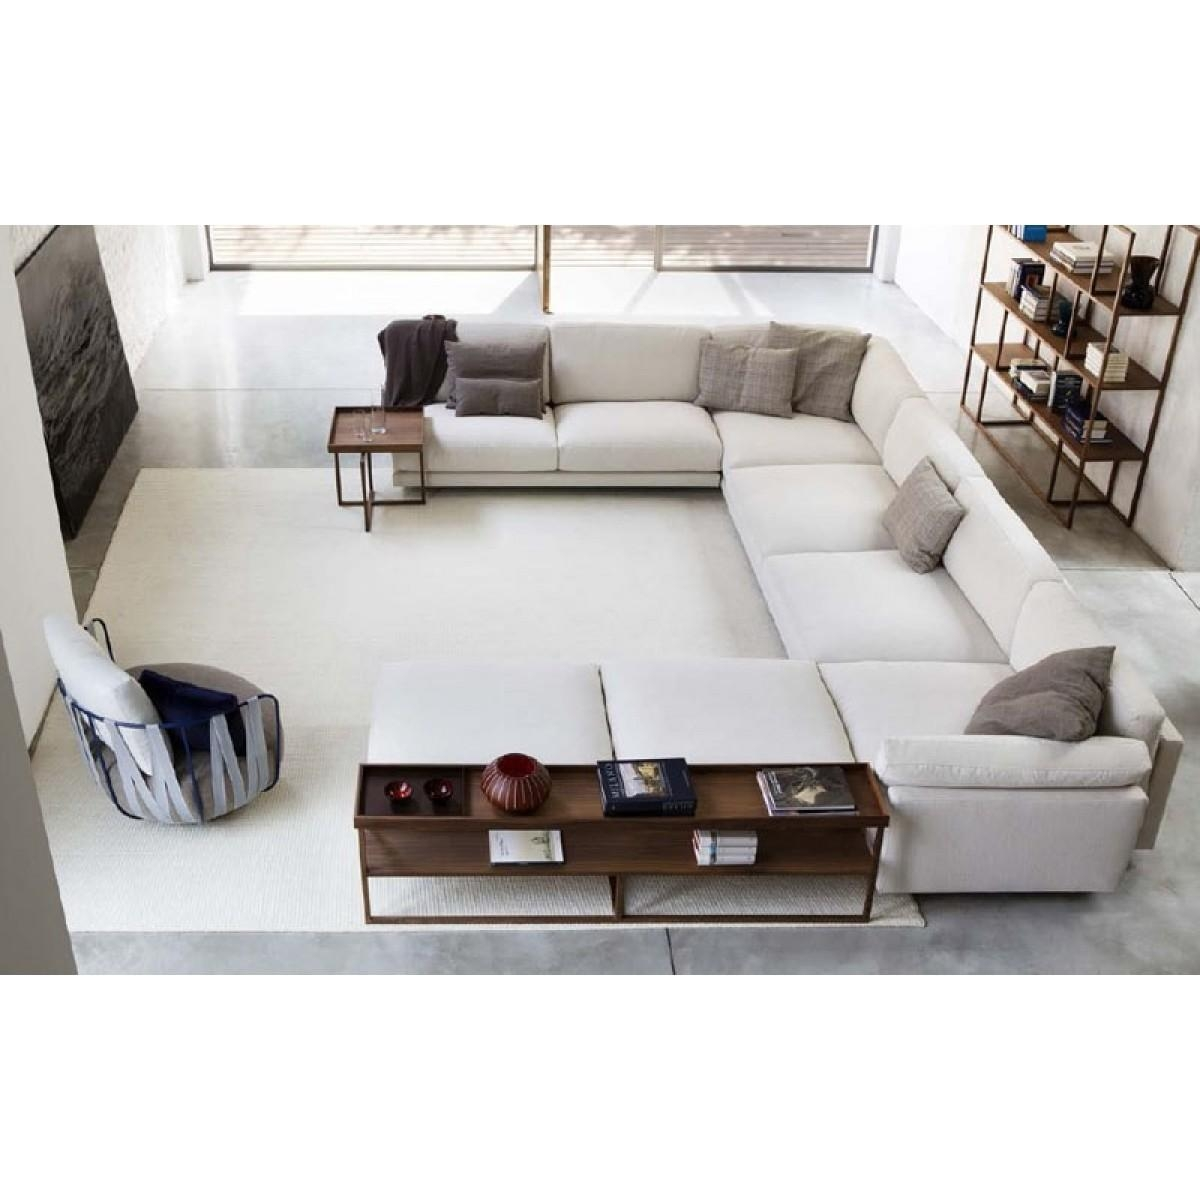 20 Photos Wide Seat Sectional Sofas